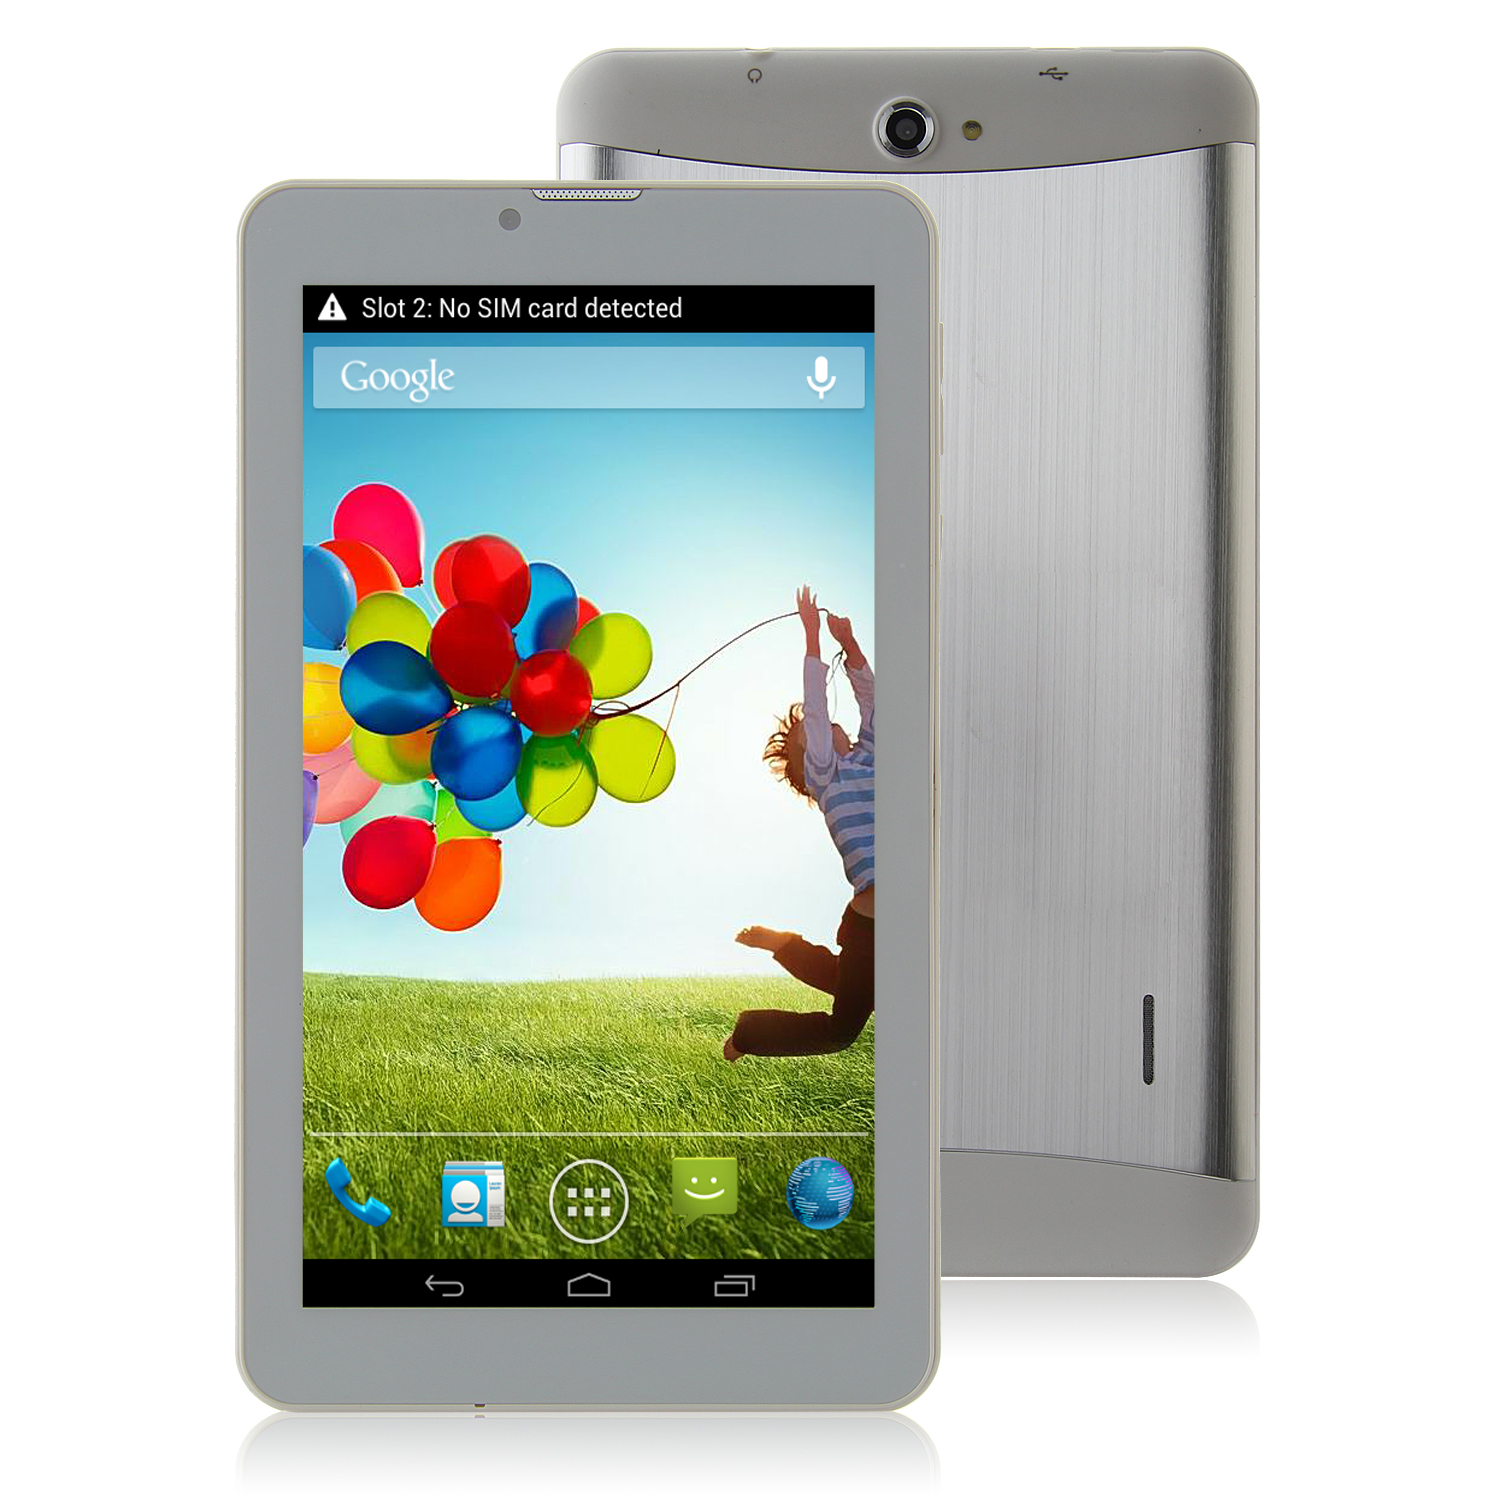 S72 3G Tablet PC 7.0 Inch Dual Core MTK6572W Android 4.2 4GB WCDMA Metal Shell Silver